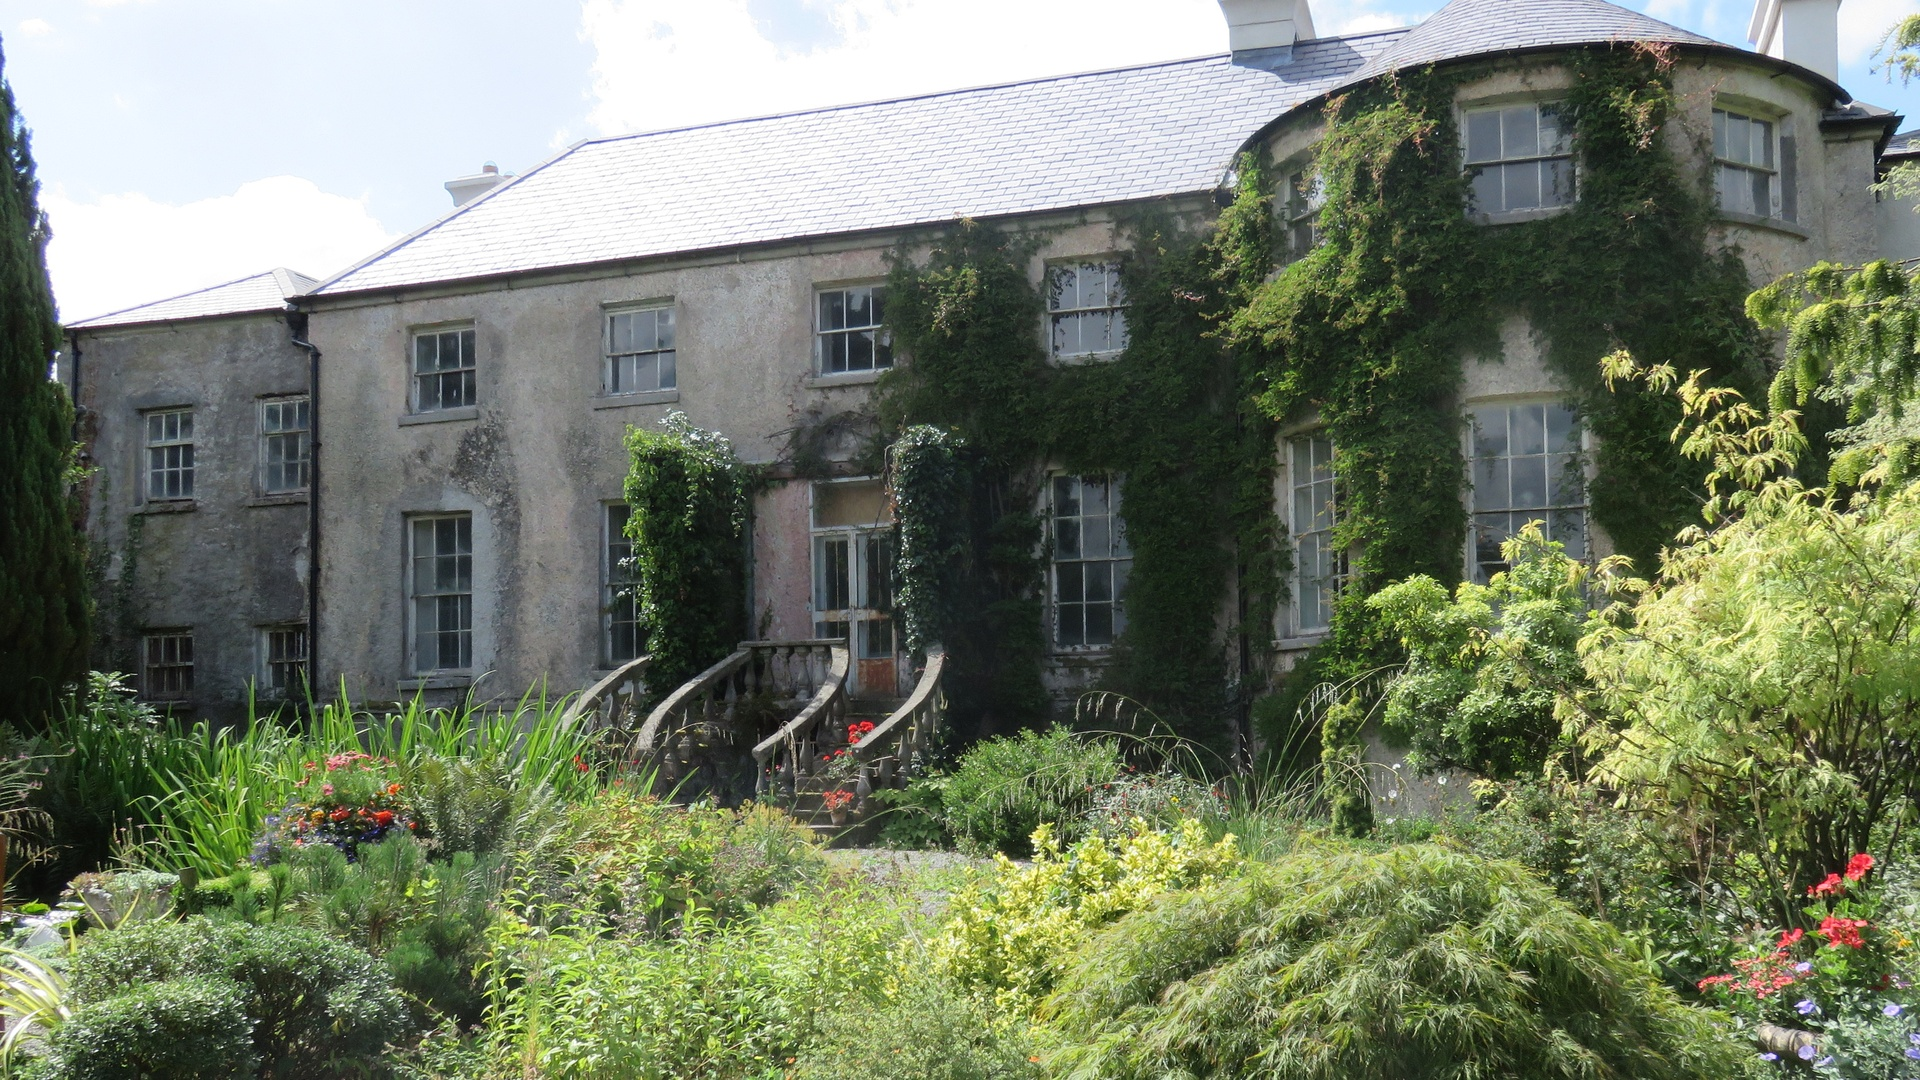 Bed and Breakfast Mia Casa, Tullow, Ireland - sil0.co.uk